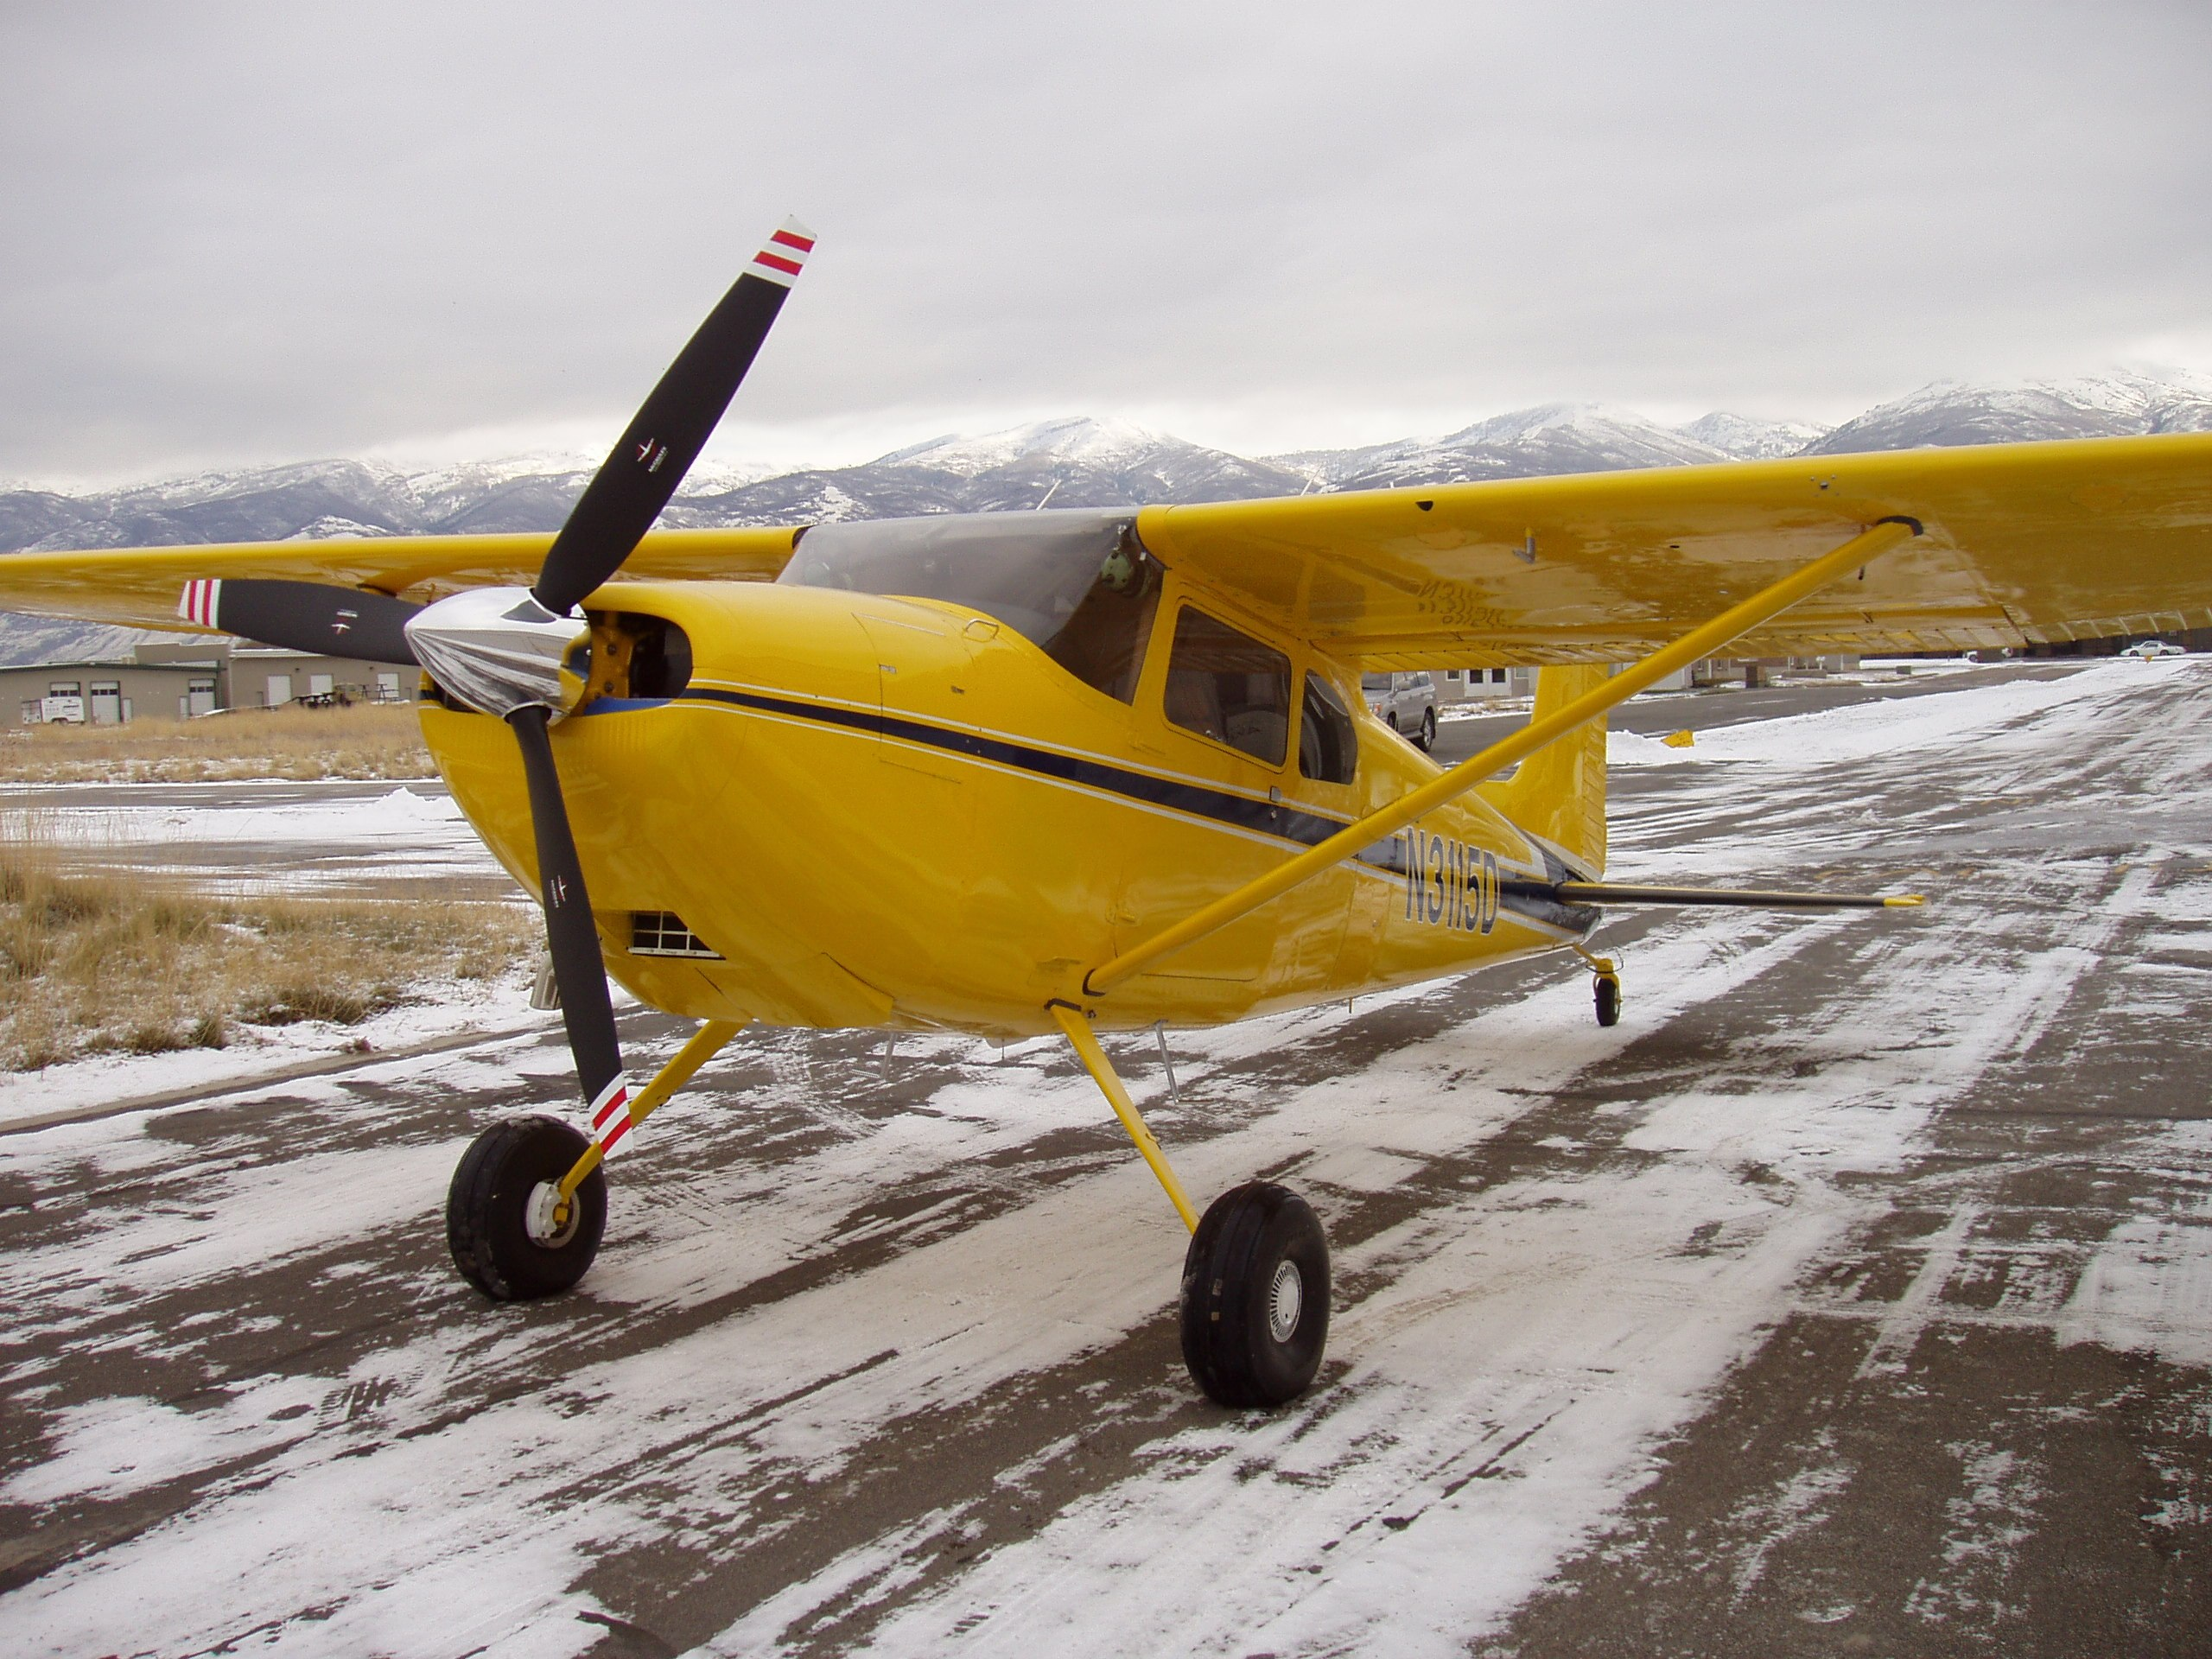 Aviation Articles, Photos, and Video